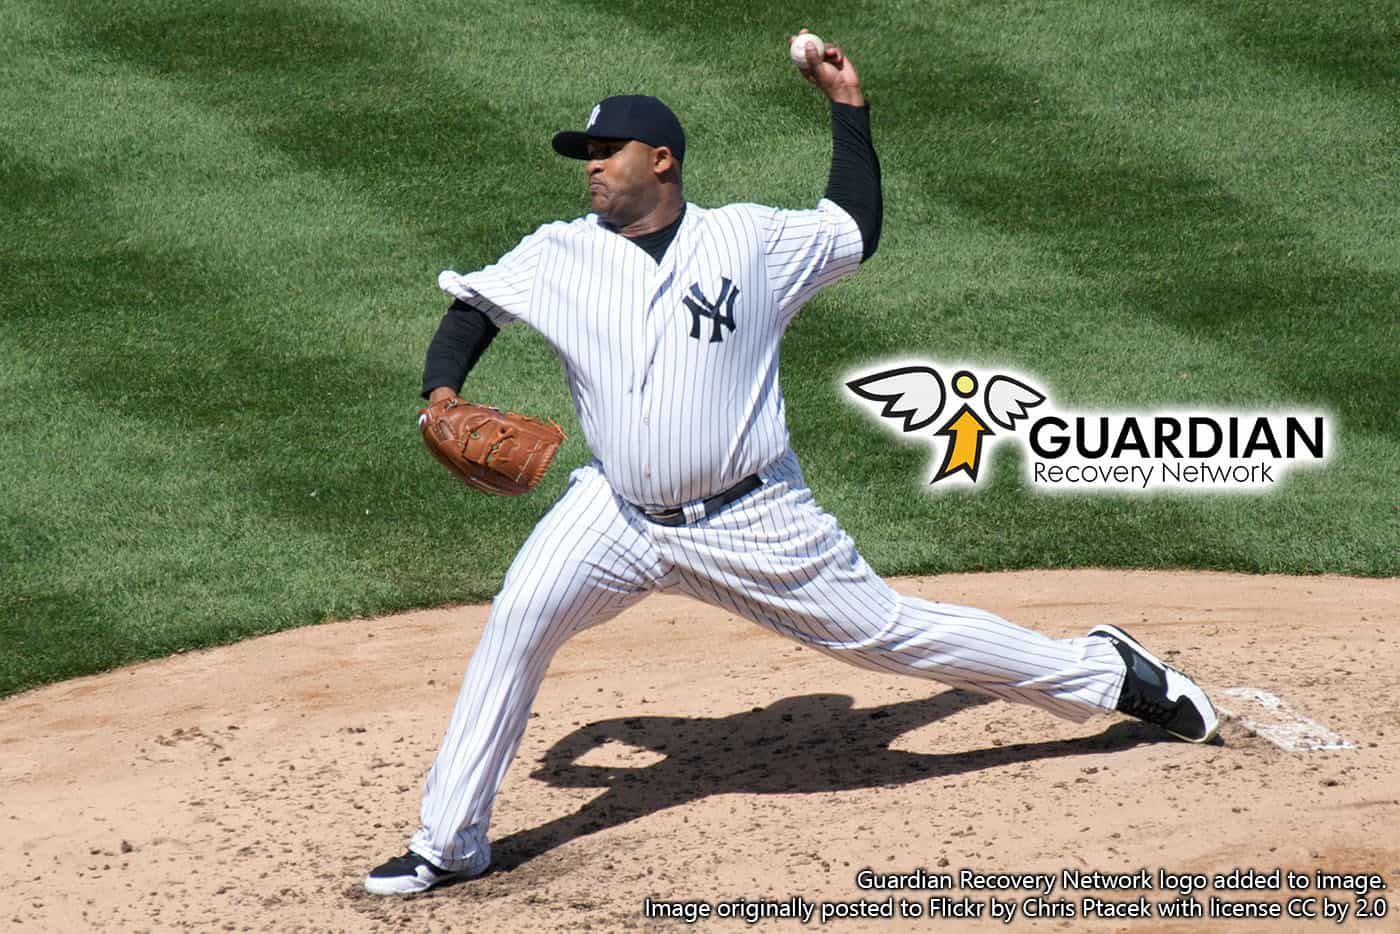 Guardian Recovery Network -Baseball Star CC Sabathia Sports Sober Athlete Highlight